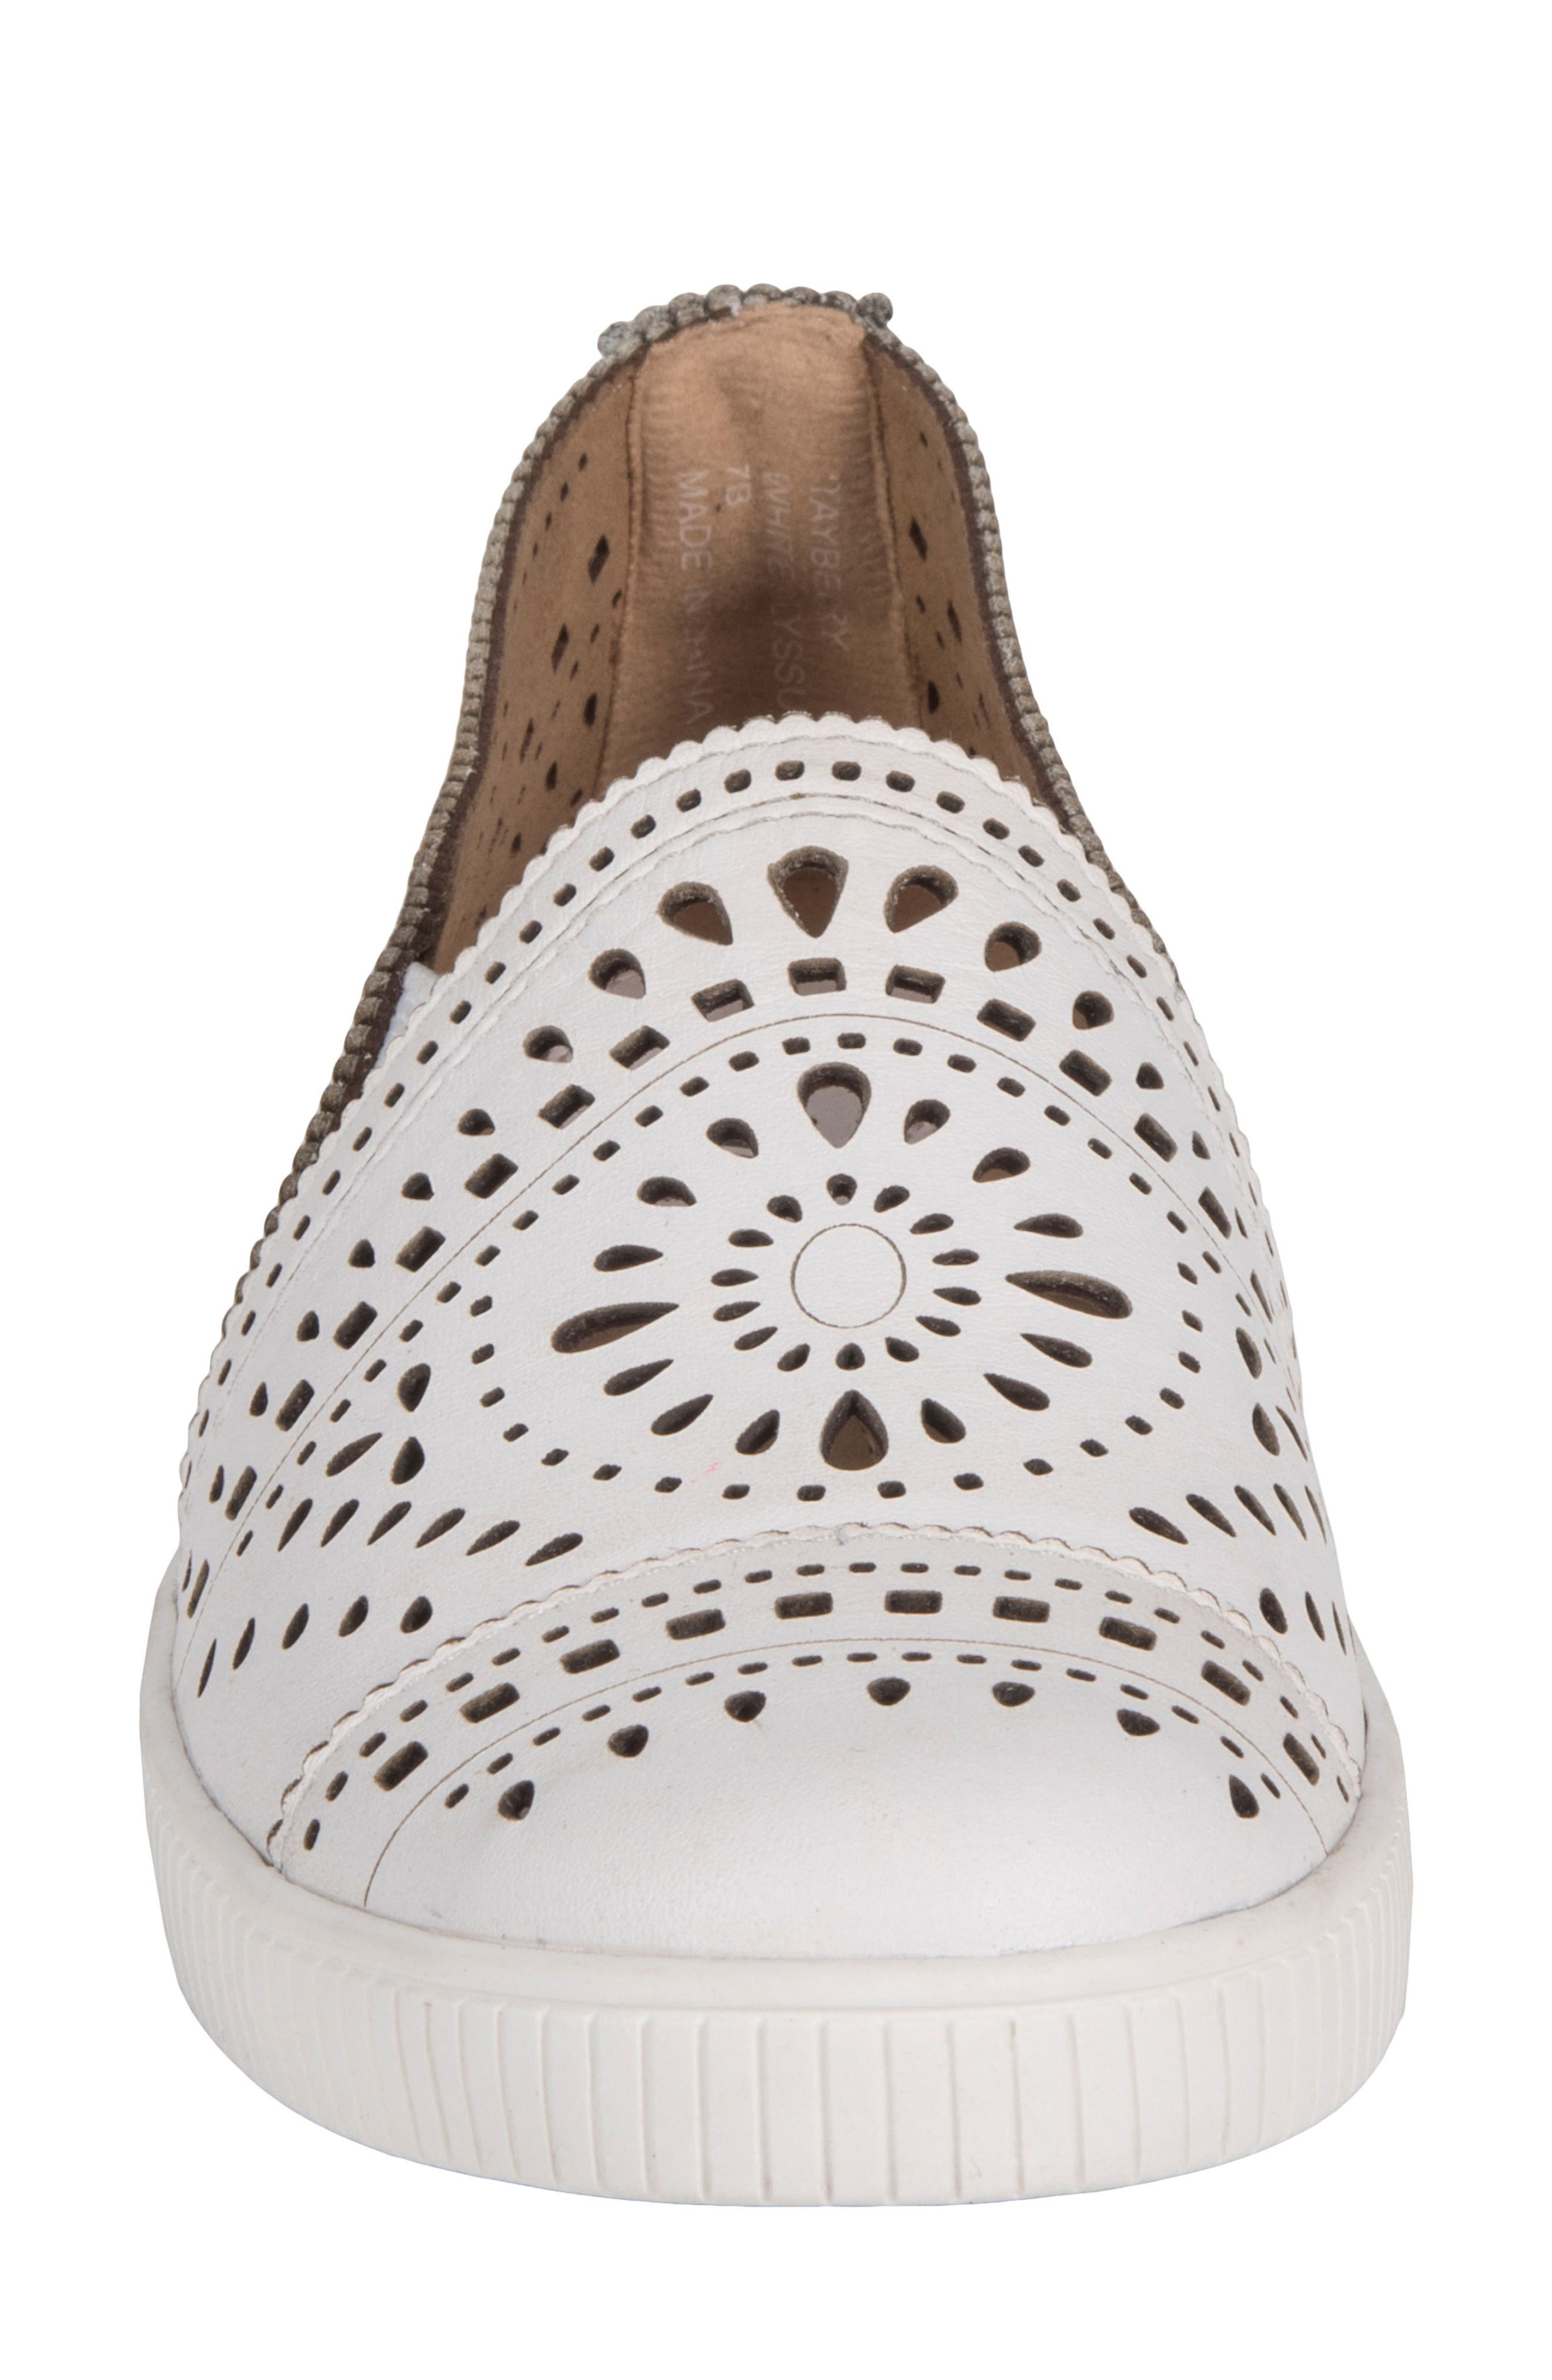 Tayberry Perforated Slip-On Sneaker,                             Alternate thumbnail 14, color,